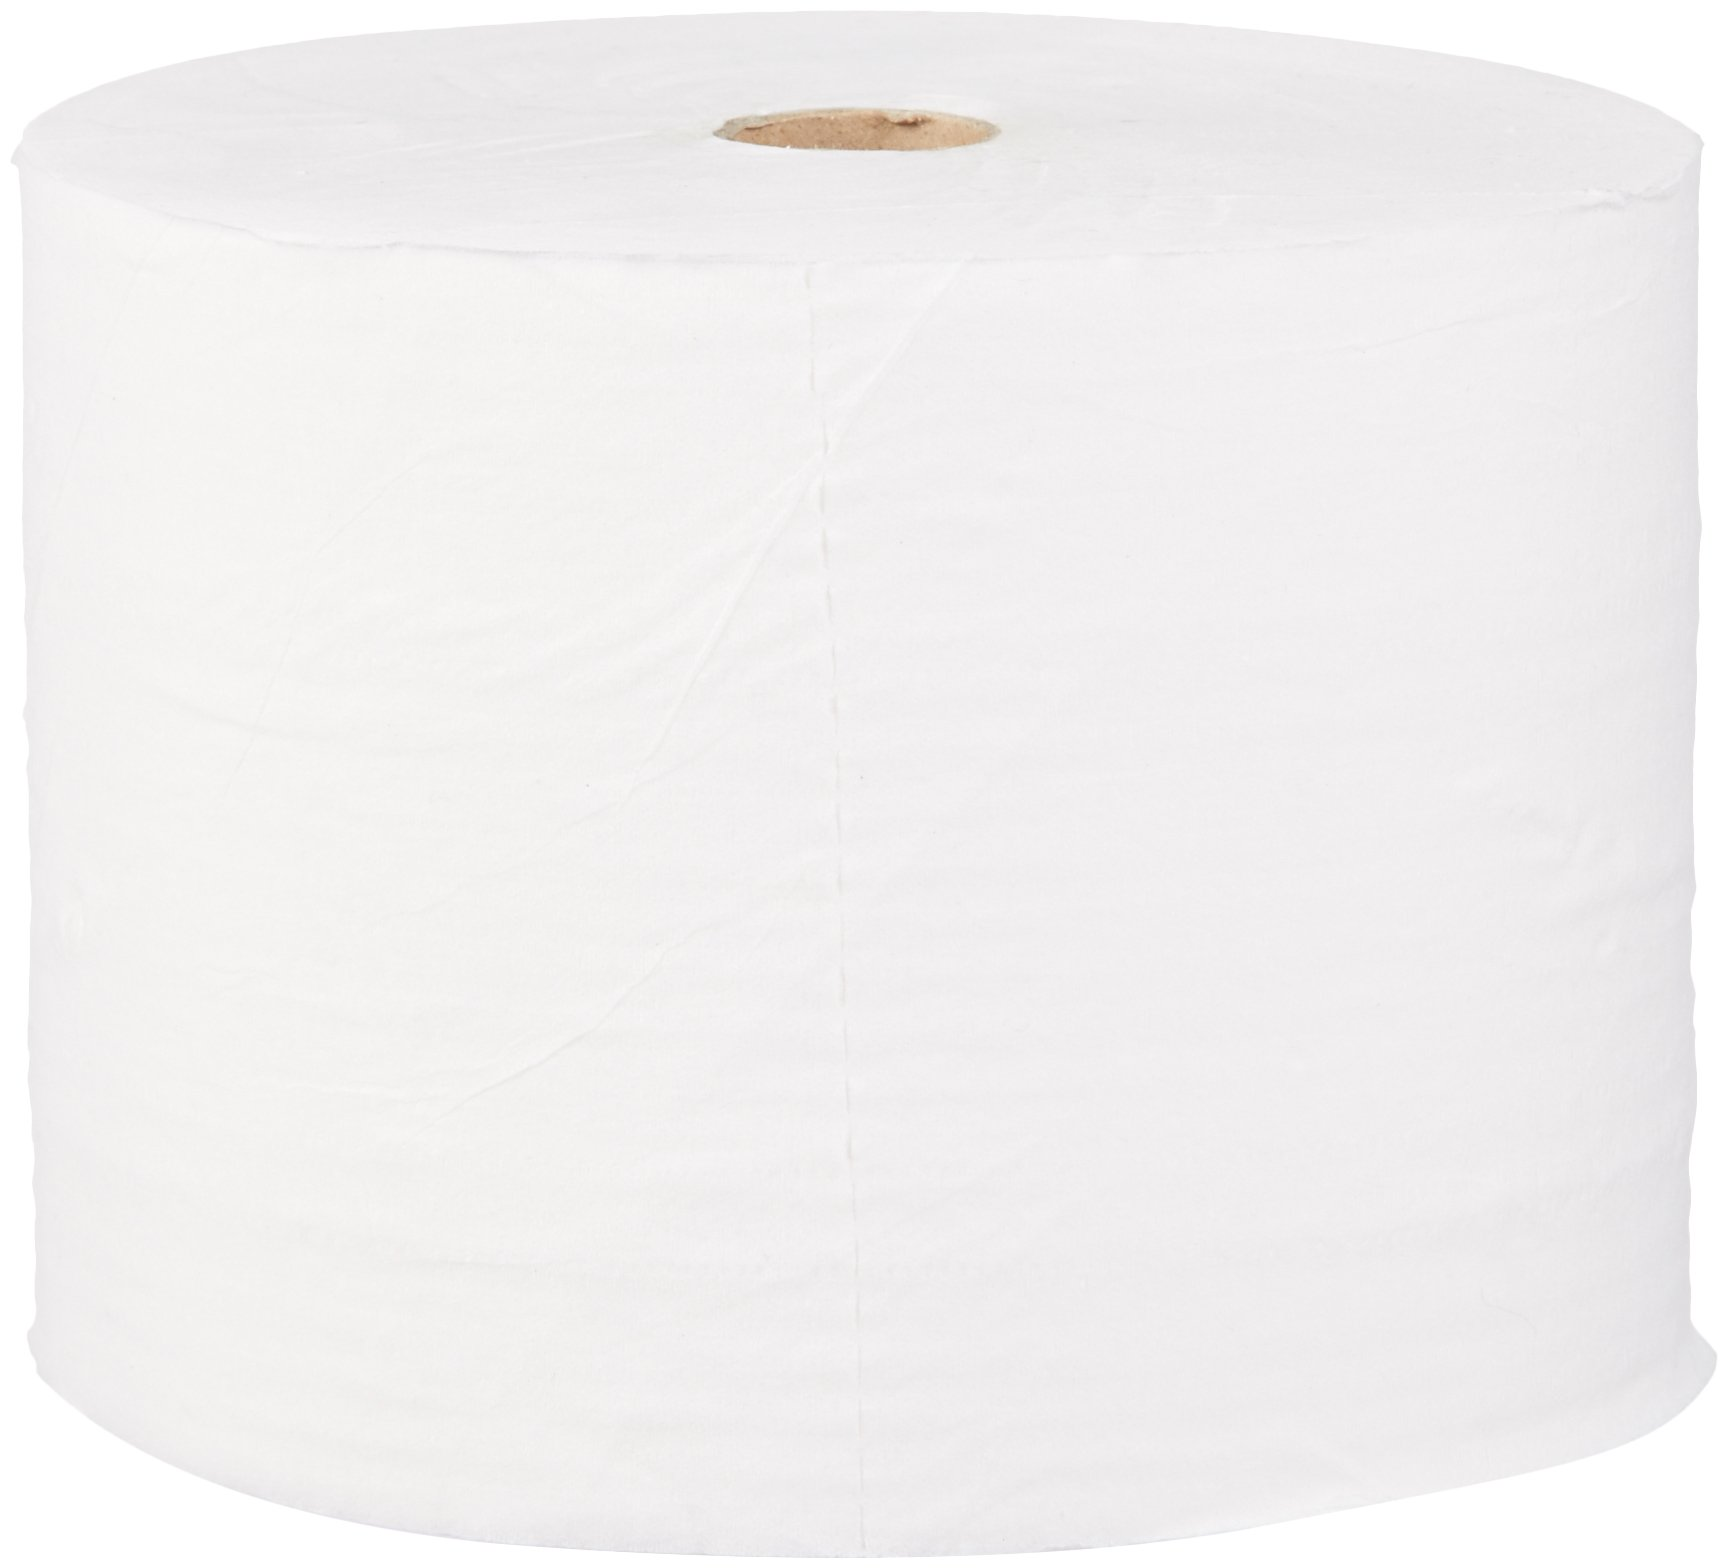 AmazonBasics Professional Small Core Toilet Tissue Dispenser Refill for Businesses, 2-Ply, 1,000 Sheets per Roll, 36 Rolls